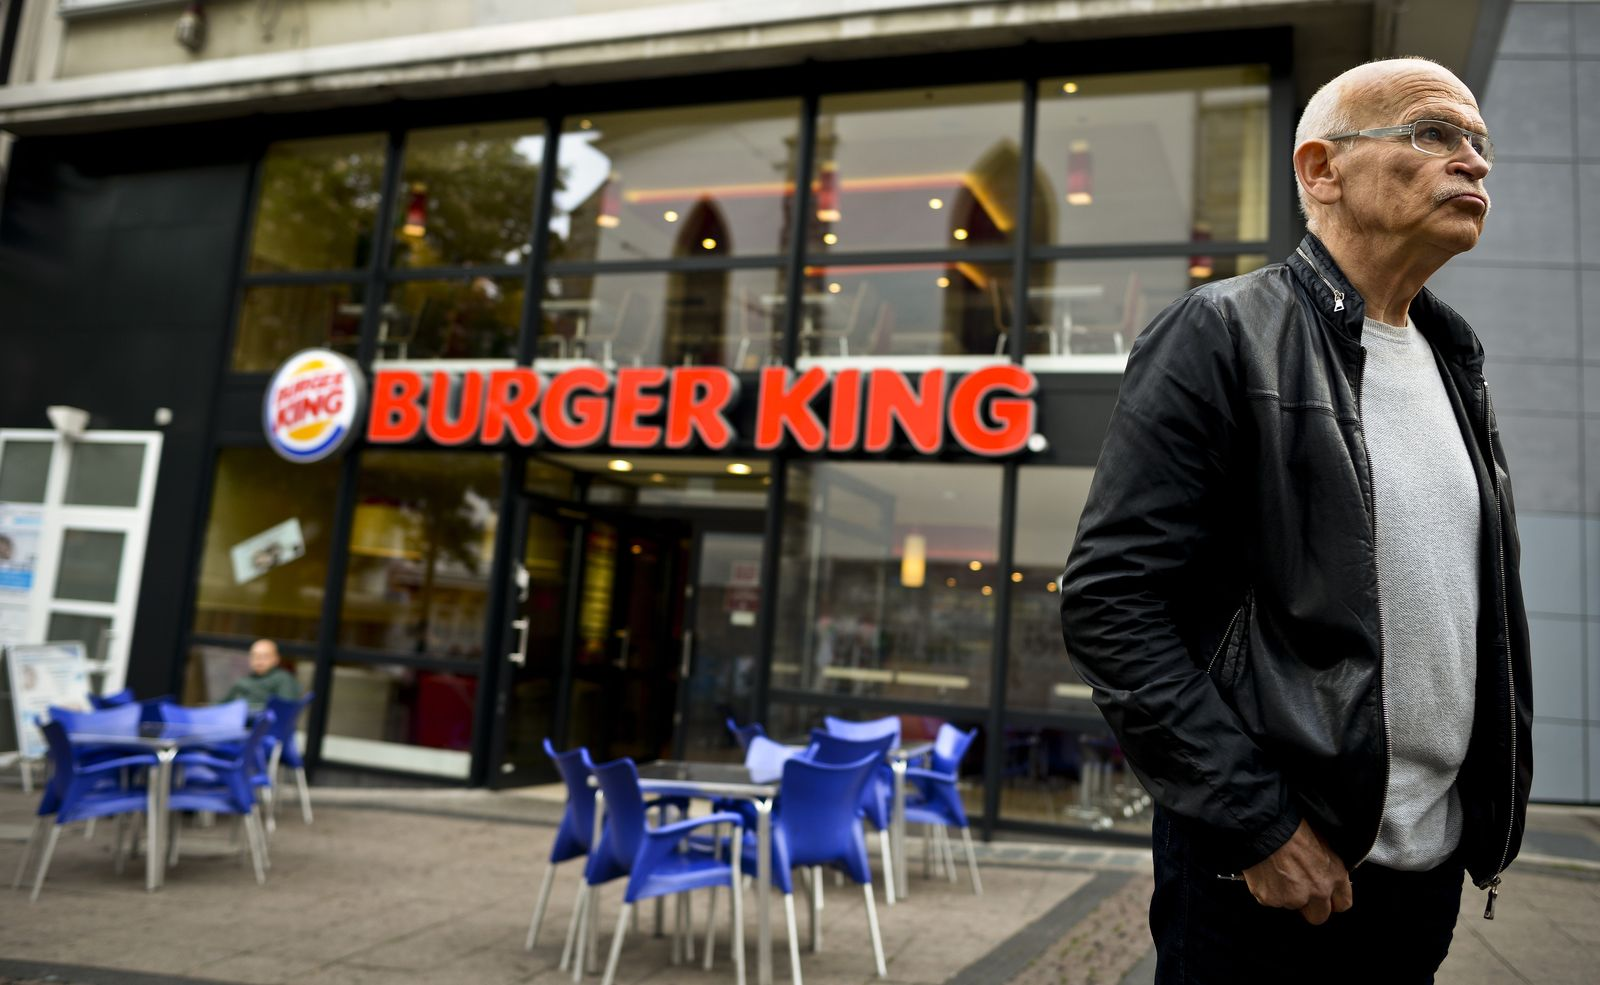 Günter Wallraff vor Burger King Filiale